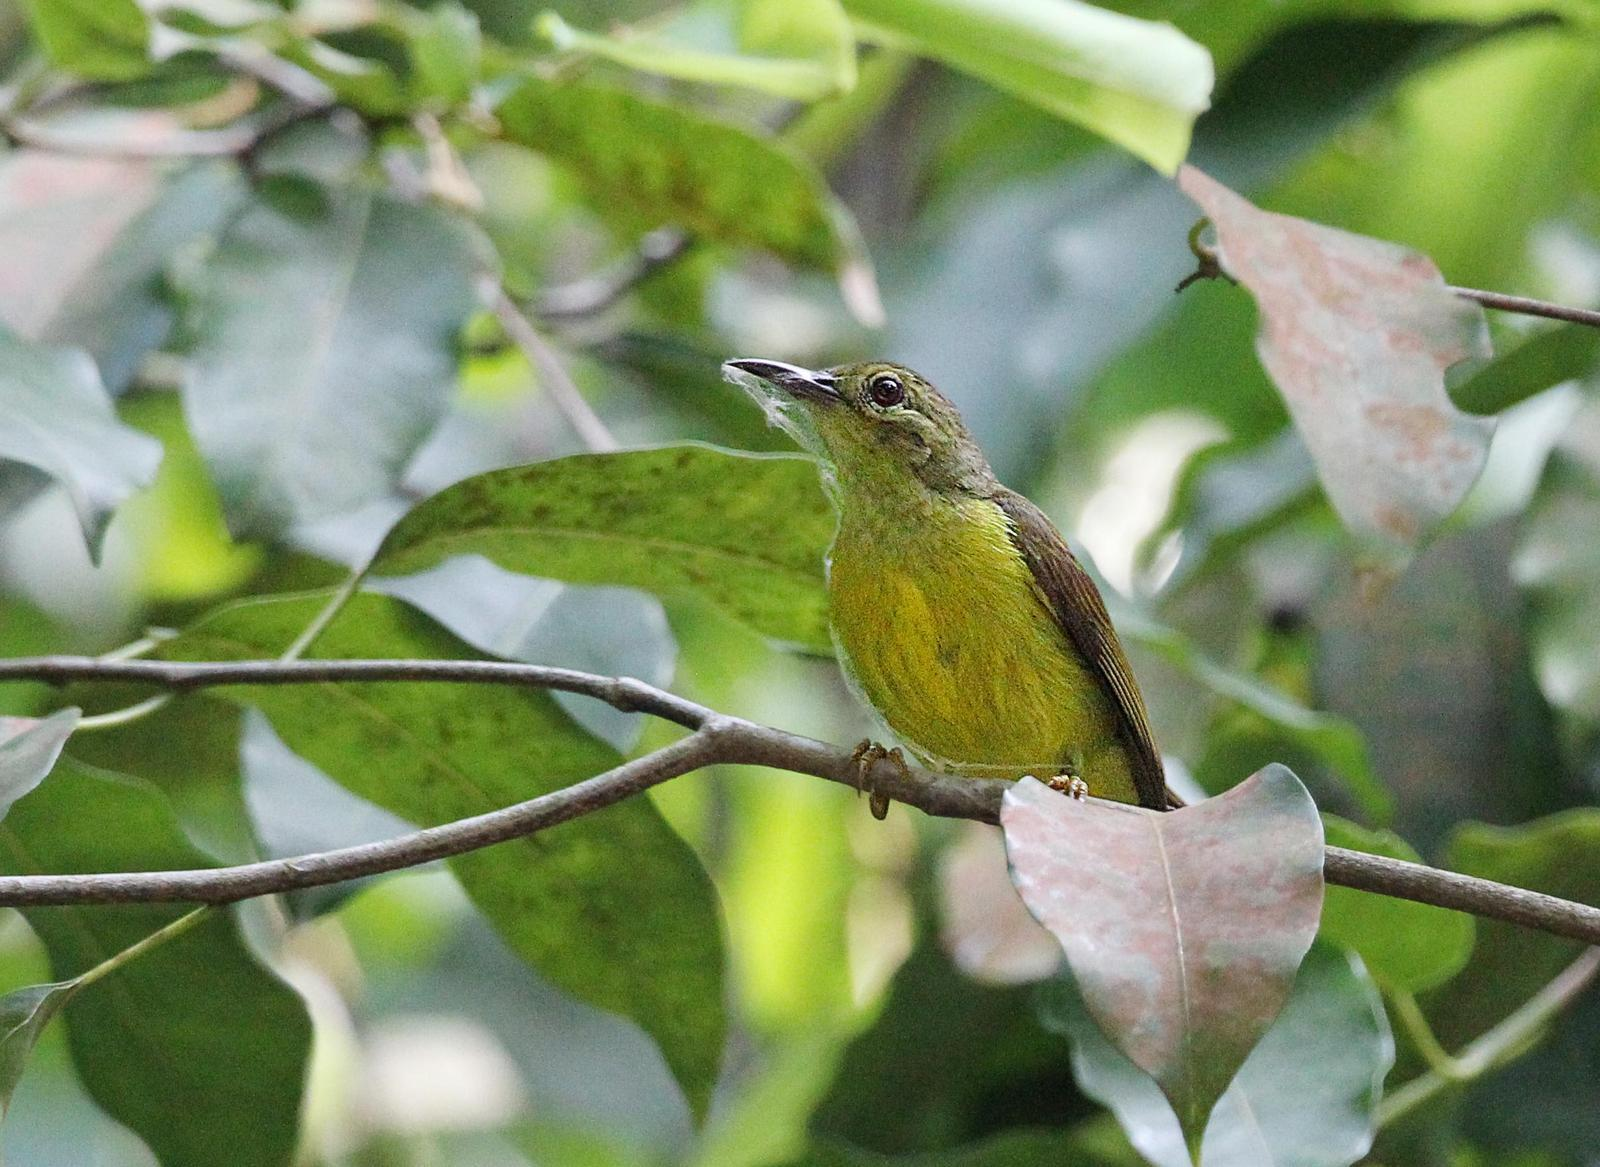 Olive-winged Bulbul Photo by Kenneth Cheong